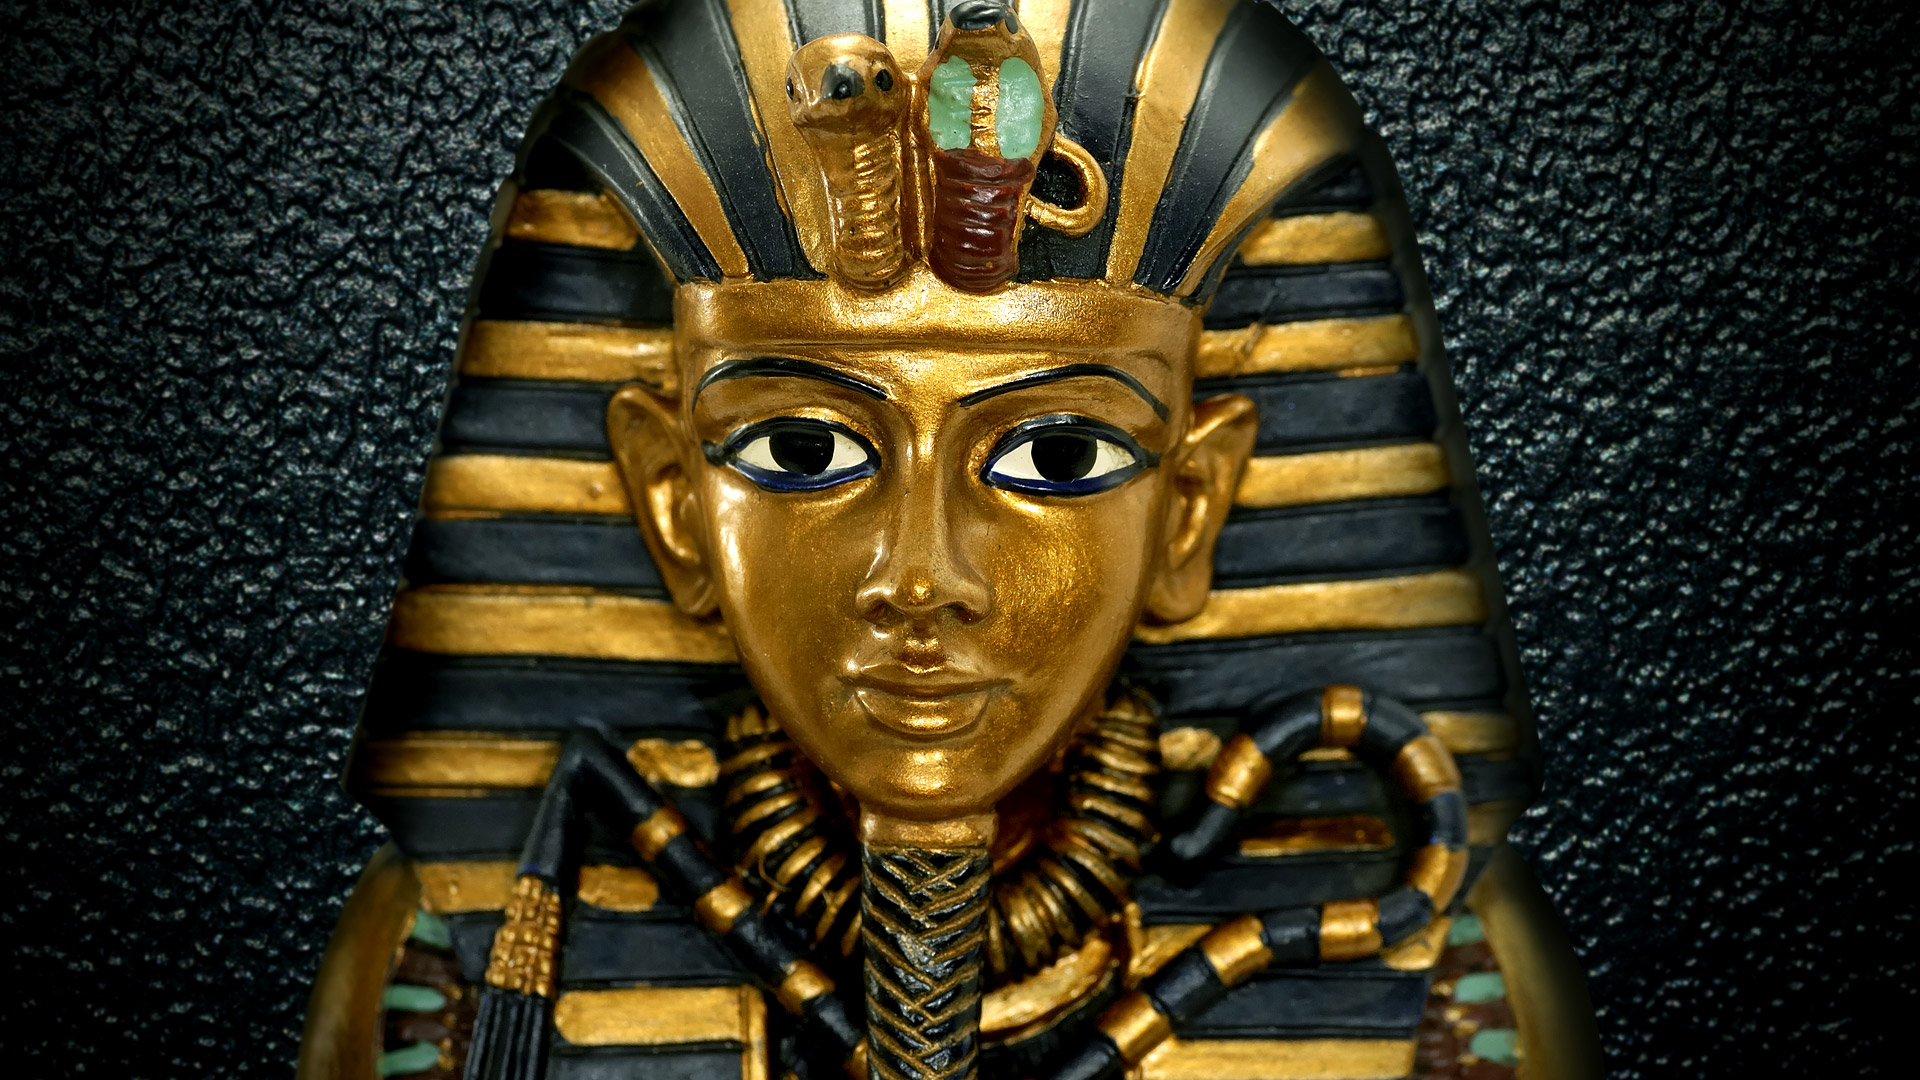 Egyptian Mummy sarcophagus